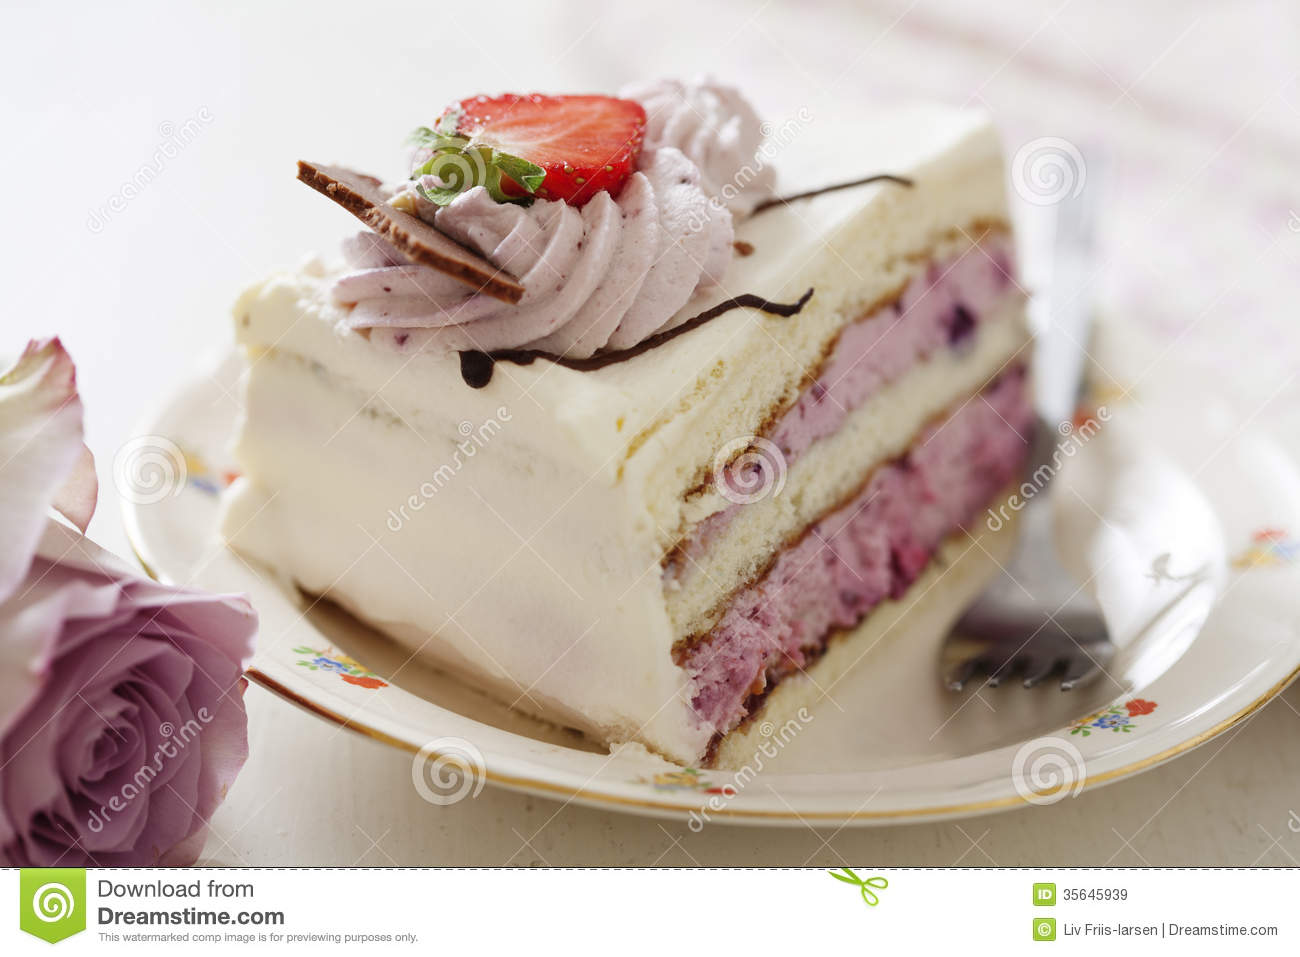 Fruit cake stock image. Image of baking, cake, layered ...